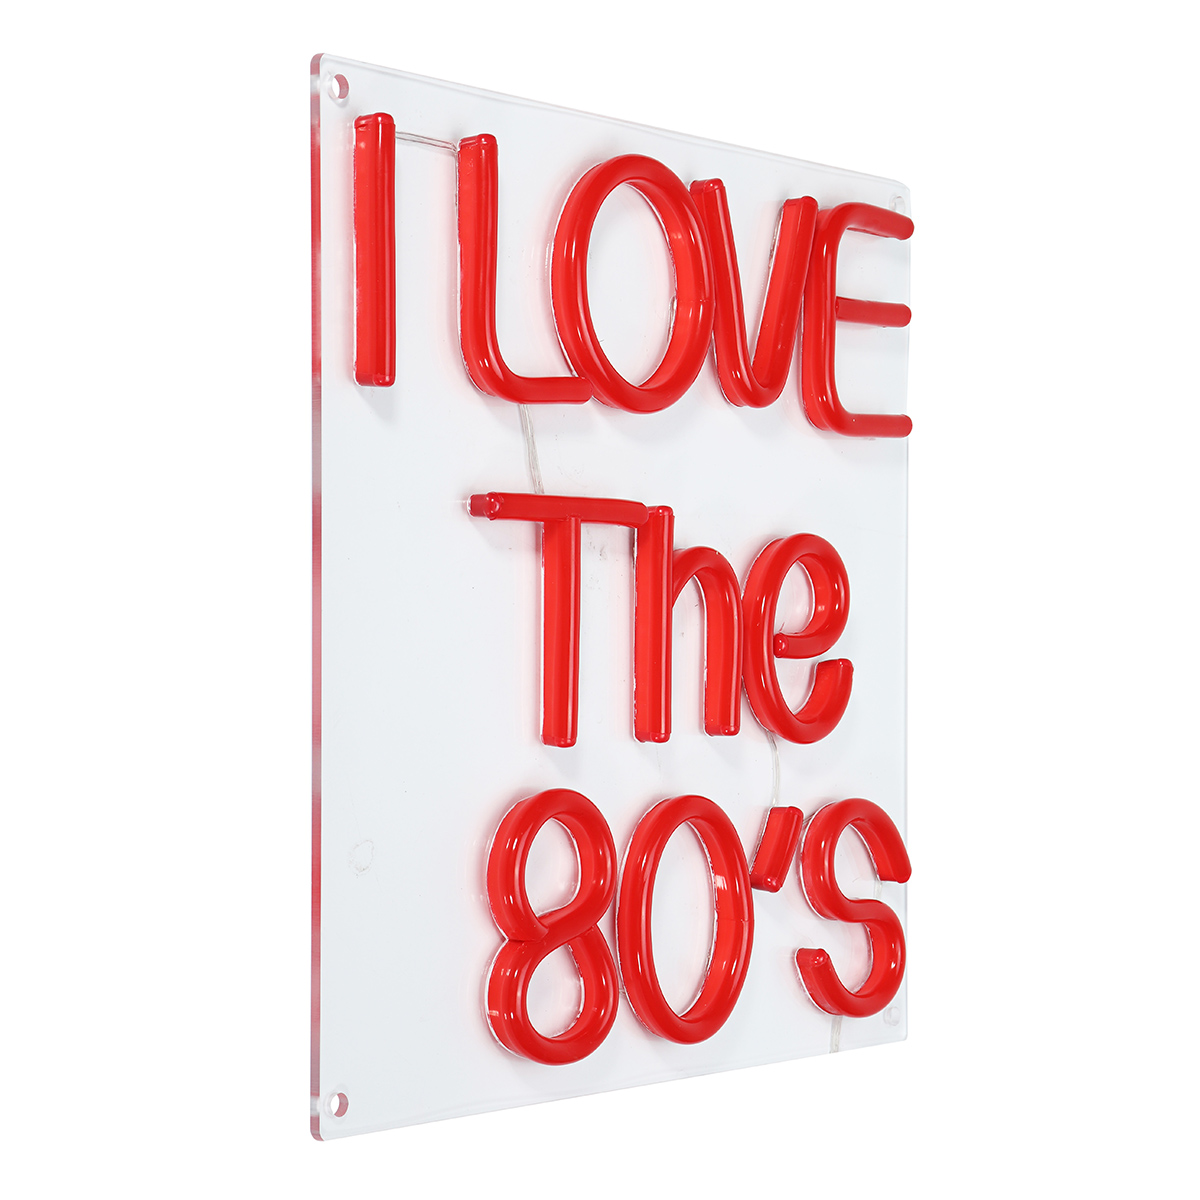 I Love The 80'S Neon Sign LED Tube Handmade Visual Artwork Bar Club Wall Stage Light Decor